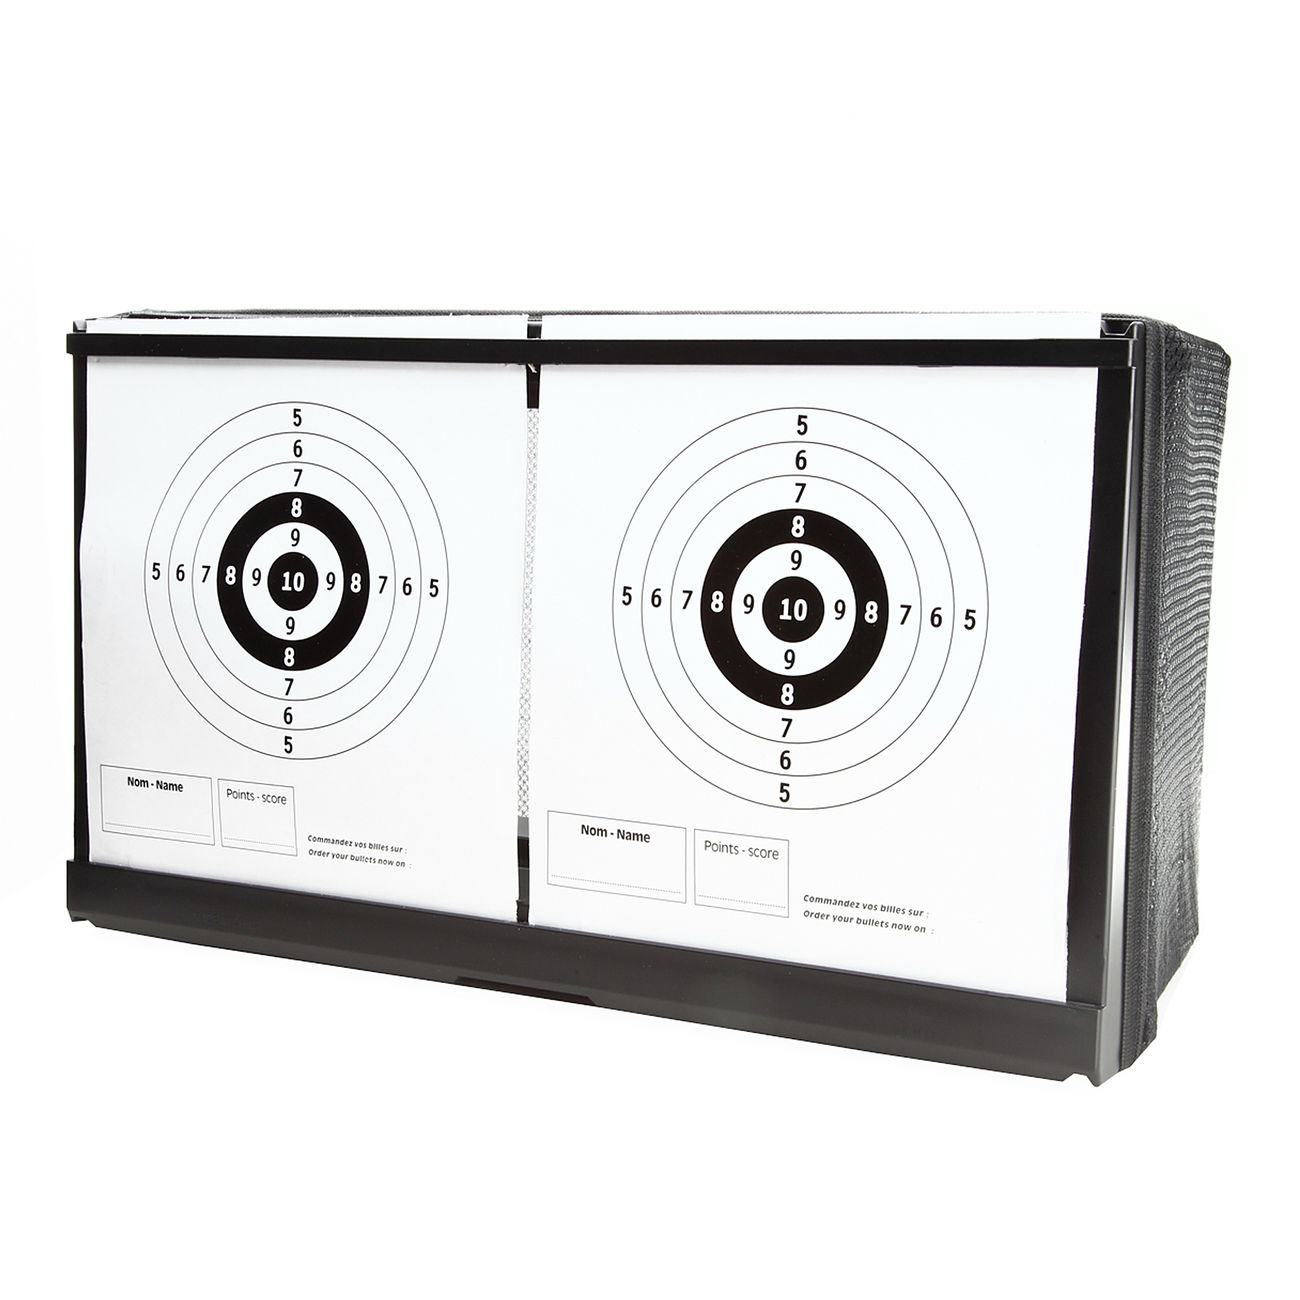 Wellfire Shooting Target Kugelfang 2in1 für Softair 2